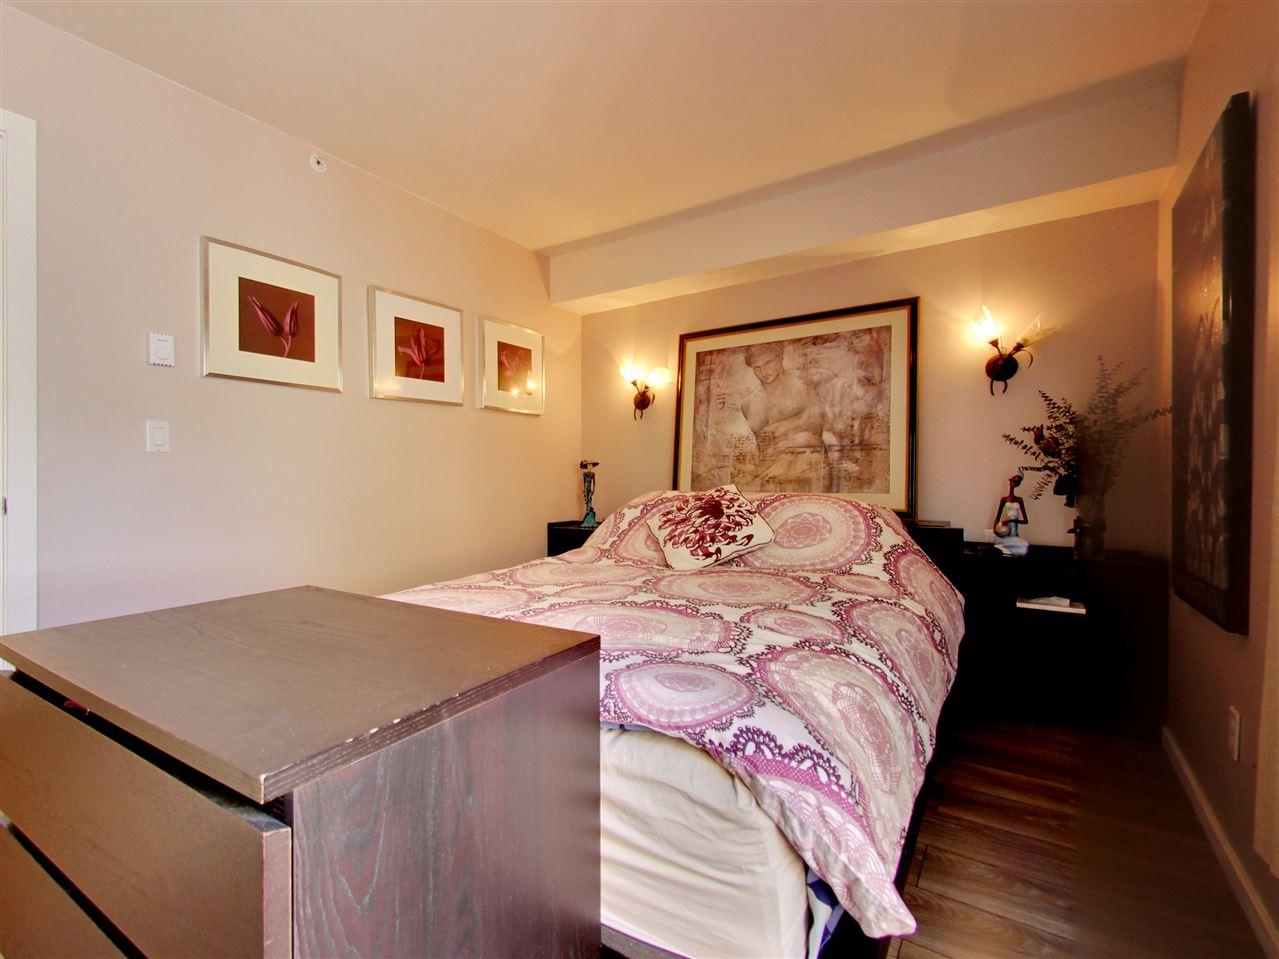 Photo 8: 2309 ALDER STREET in Vancouver: Fairview VW Condo for sale (Vancouver West)  : MLS(r) # R2115607